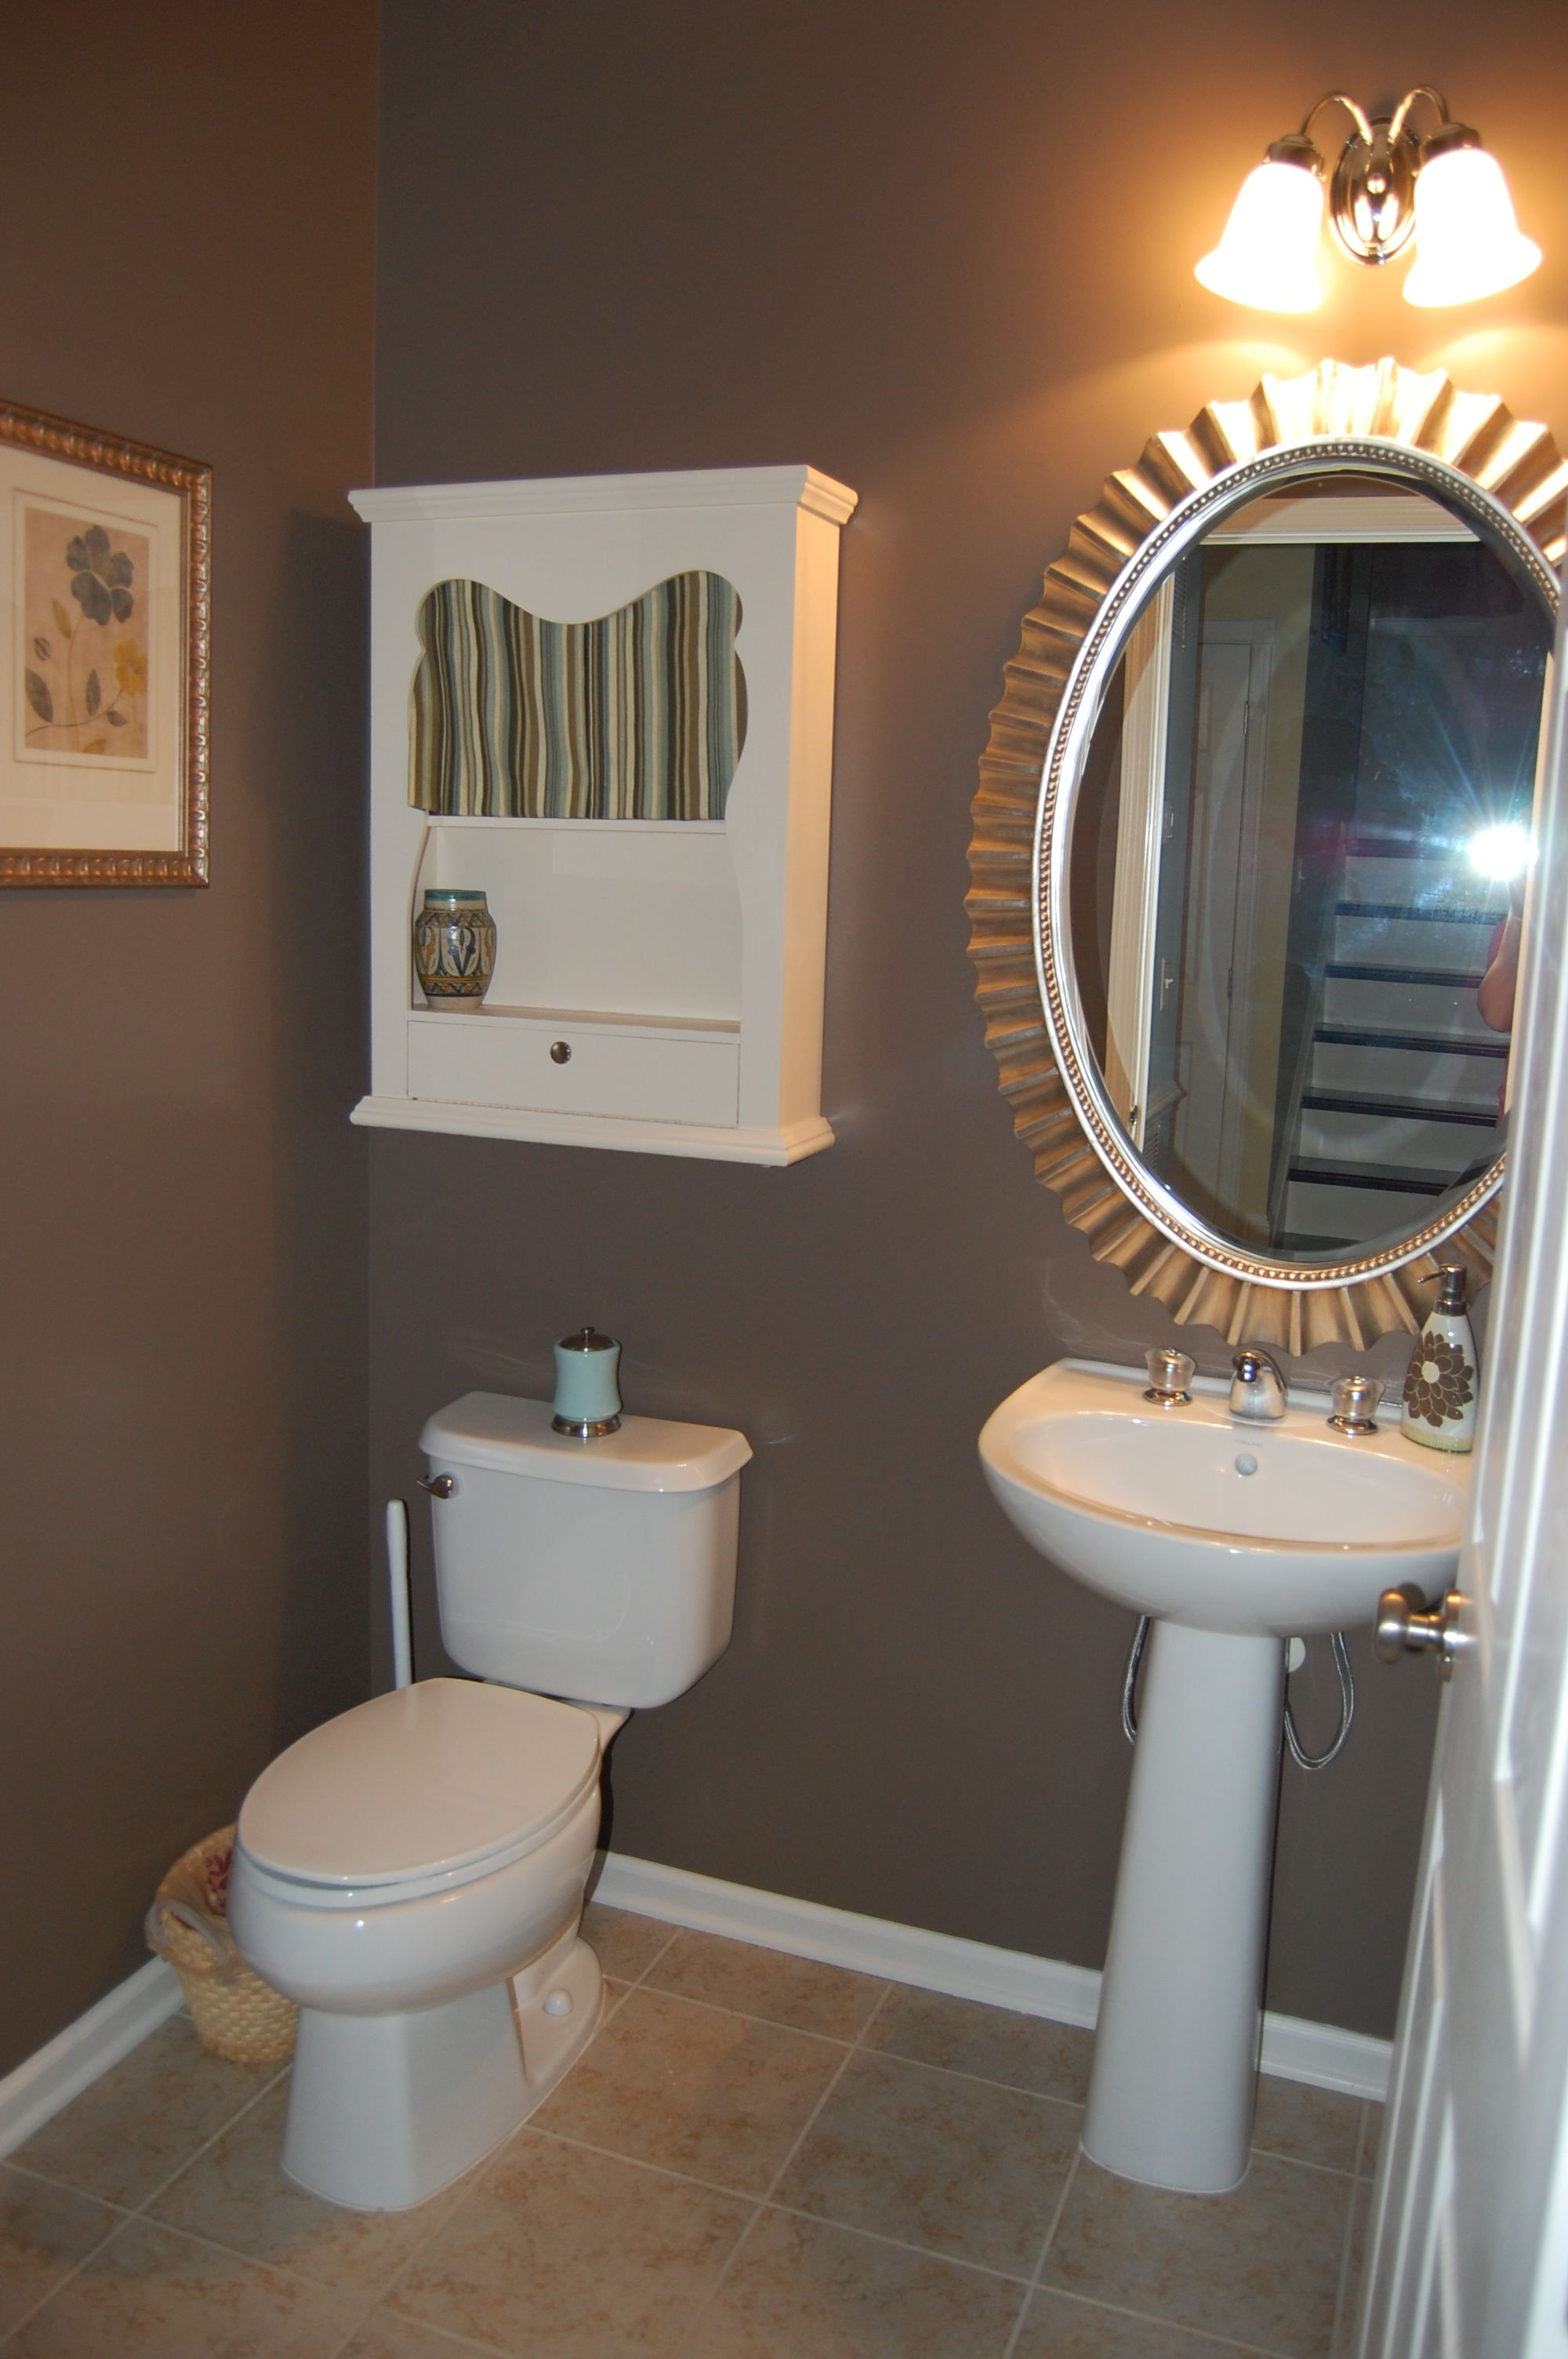 Powder room bathroom color Powder room bathroom